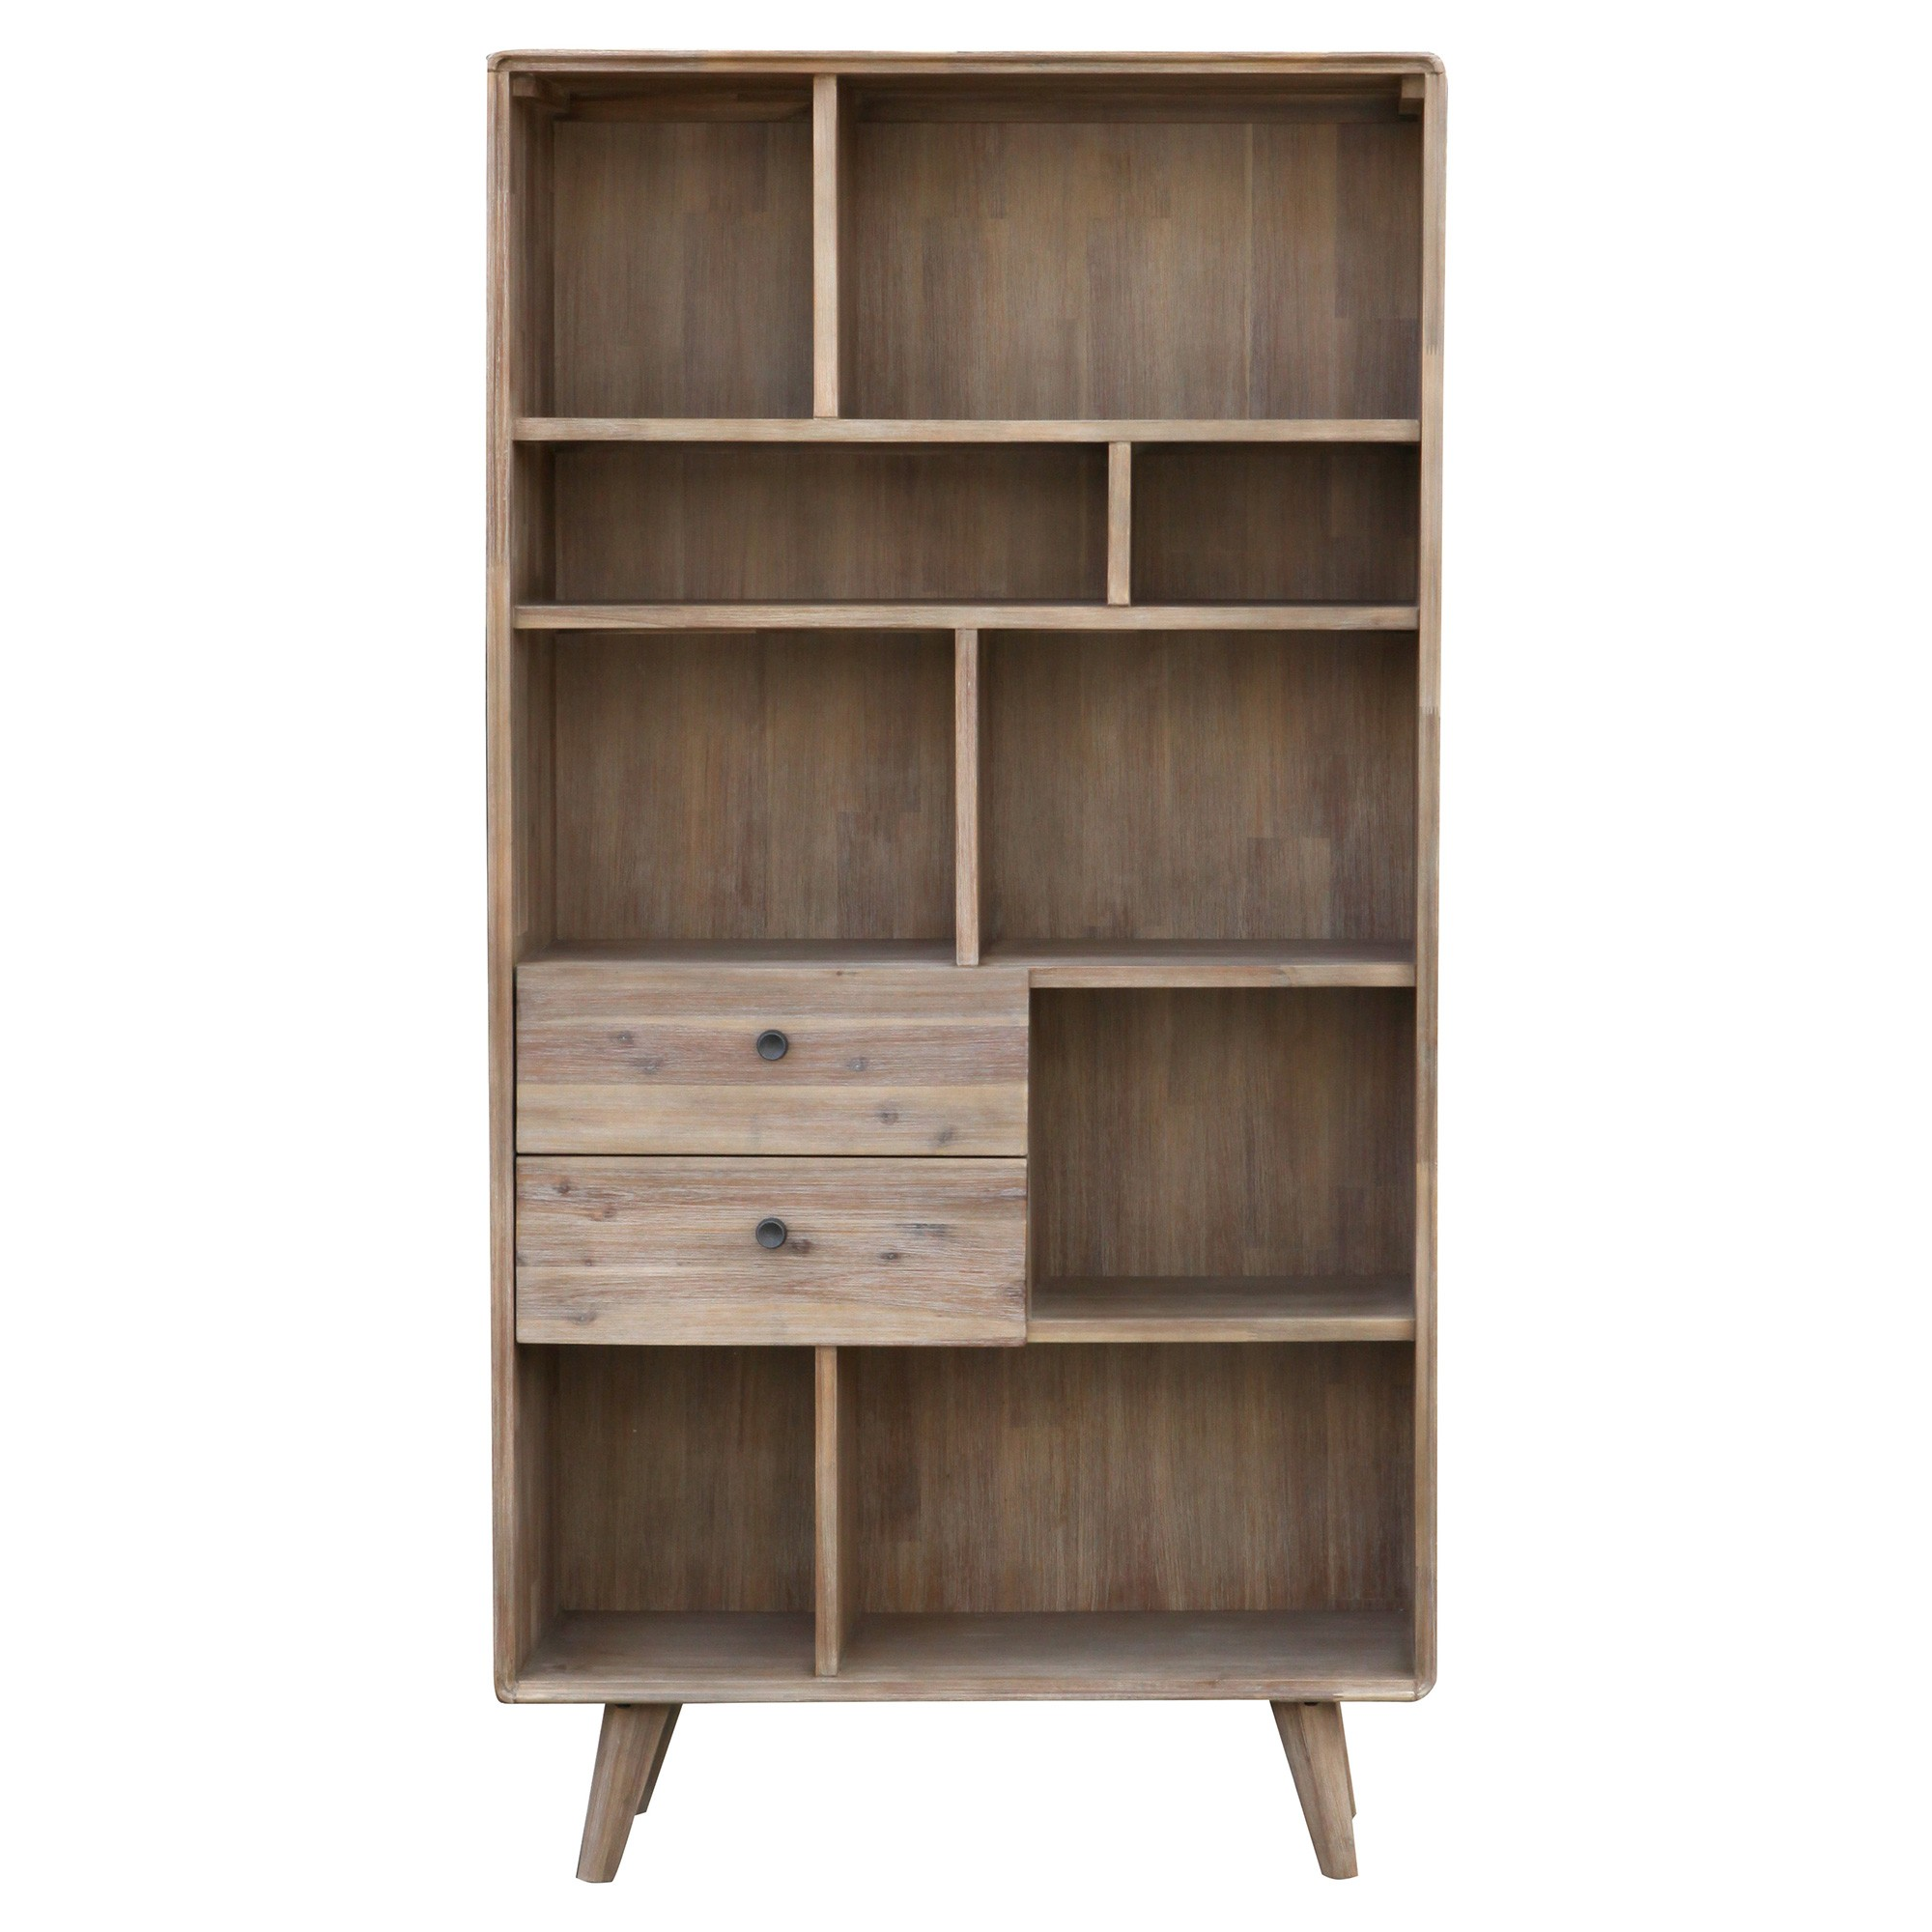 Vasto Acacia Timber Bookcase